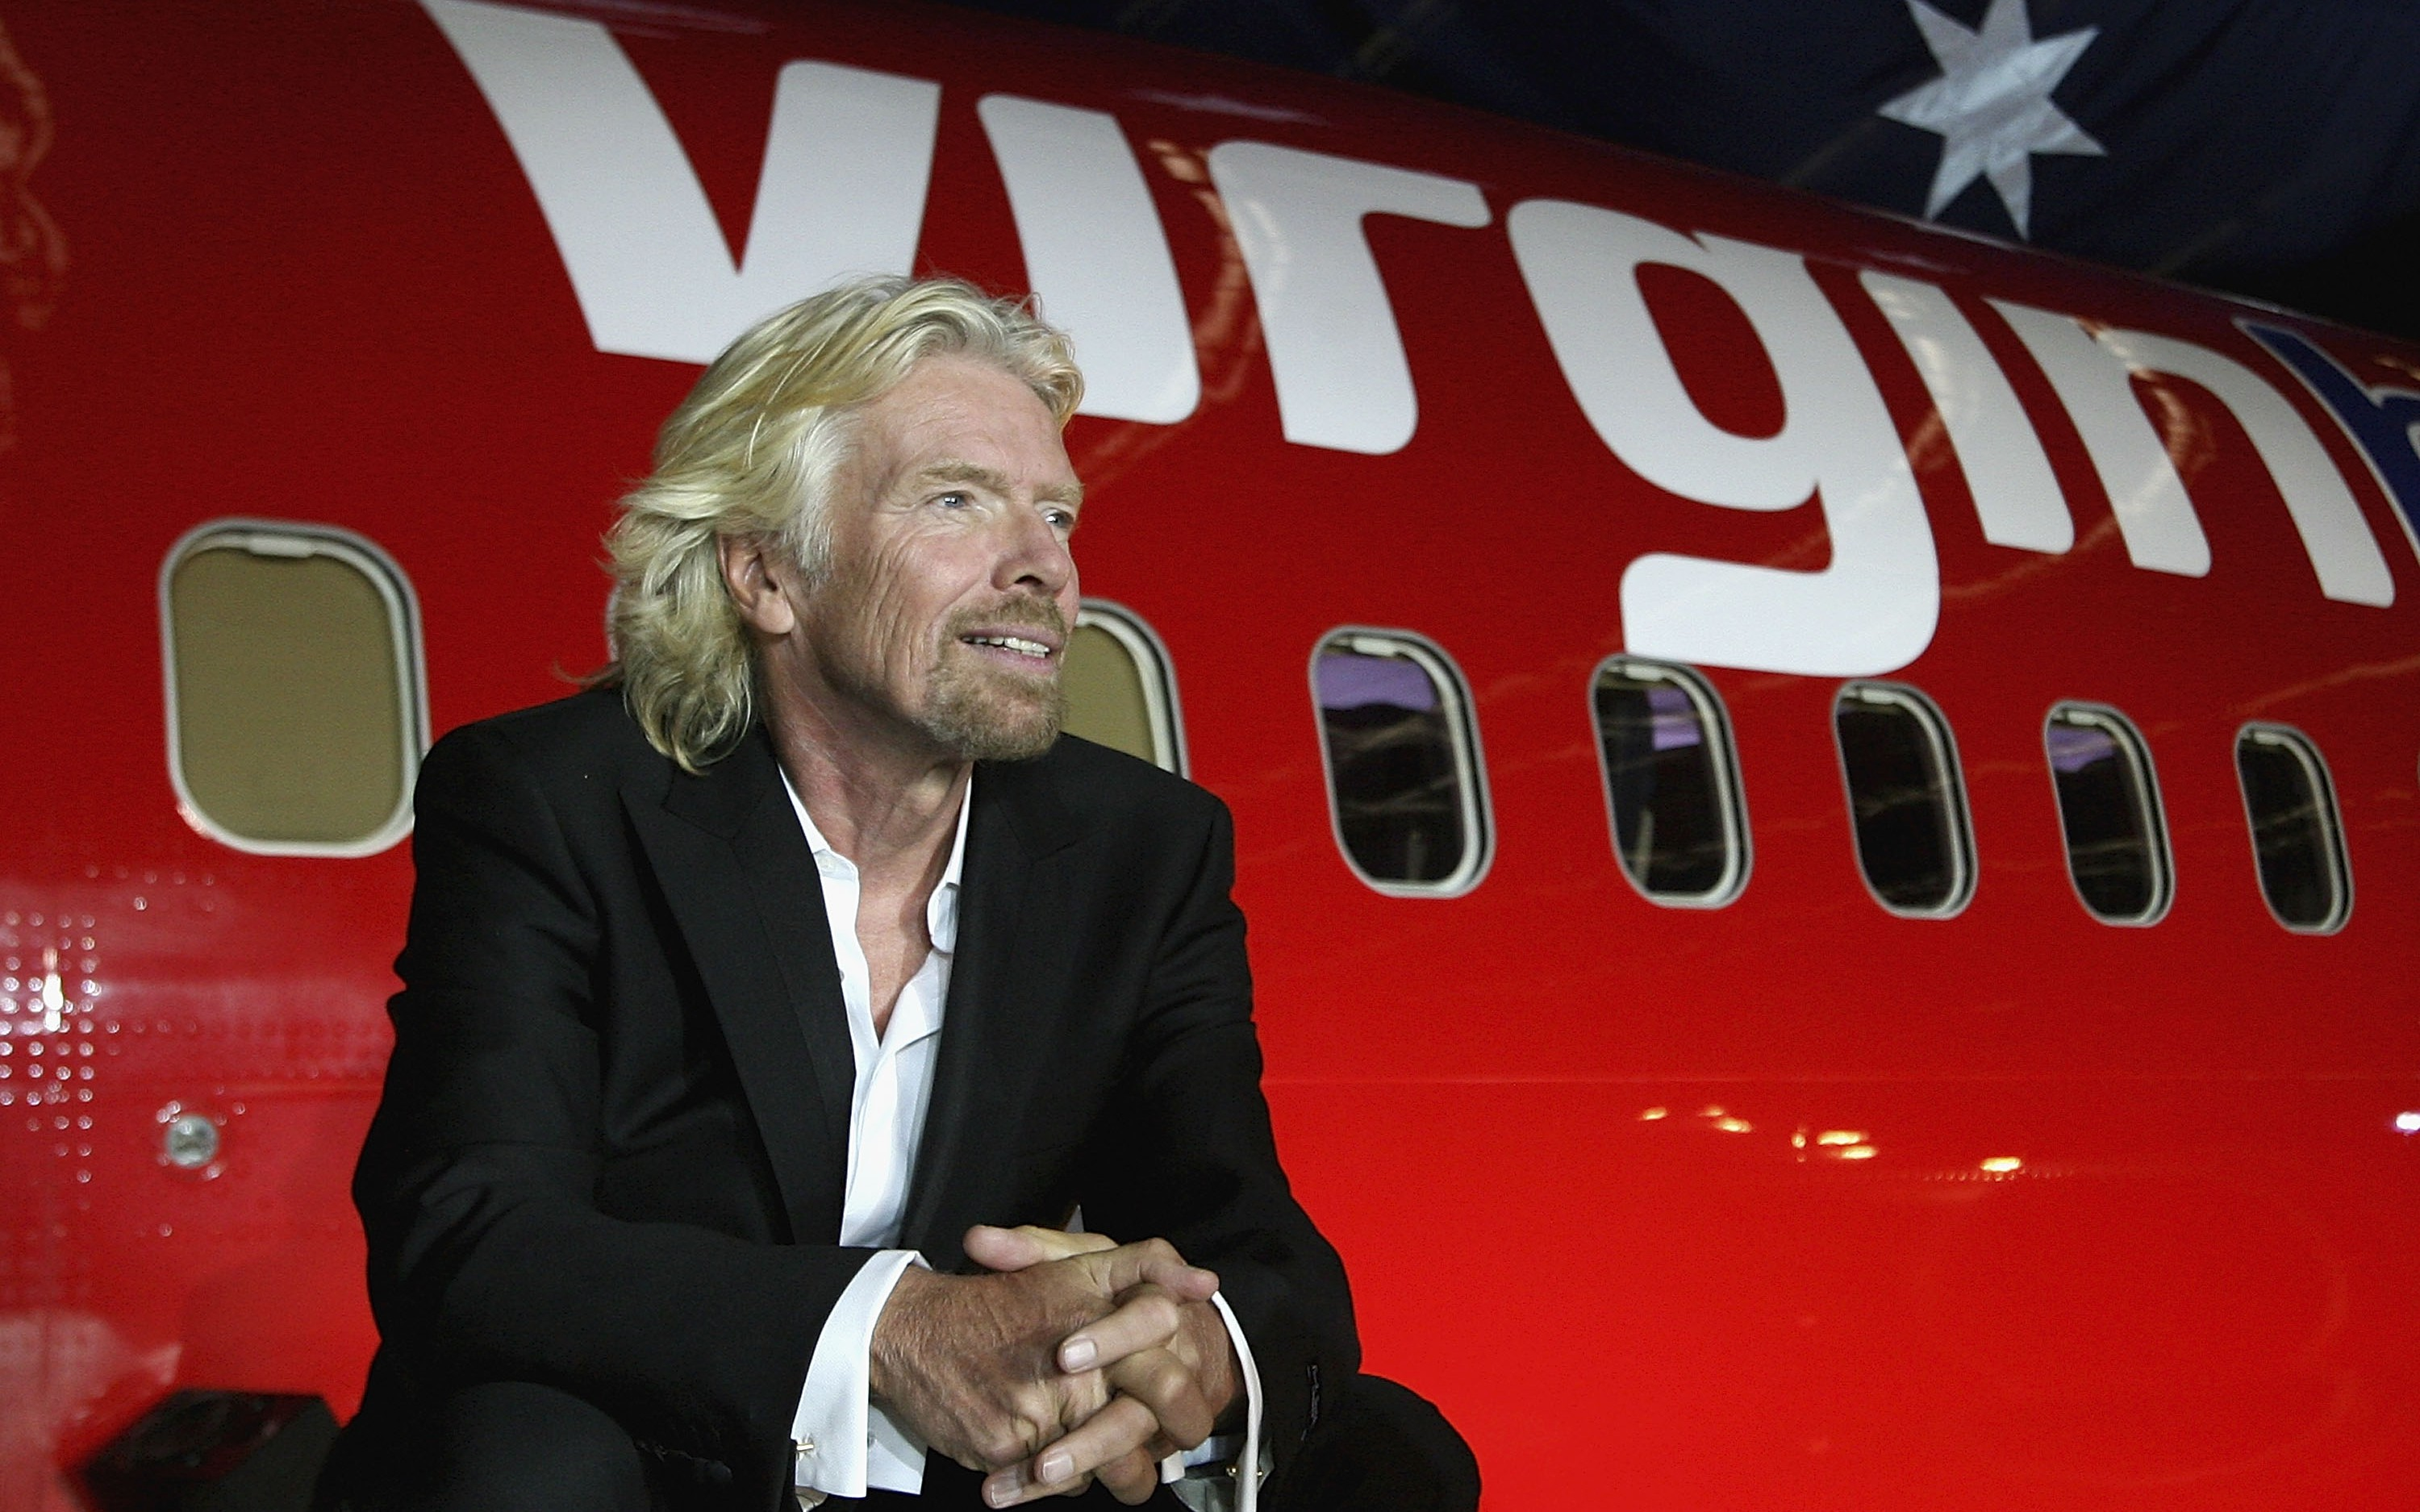 MELBOURNE, AUSTRALIA - SEPTEMBER 12:  Sir Richard Branson celebrates Virgin Blue's 10th Anniversary in Australia at Melbourne Airport on September 12, 2010 in Melbourne, Australia.  (Photo by Robert Prezioso/Getty Images)